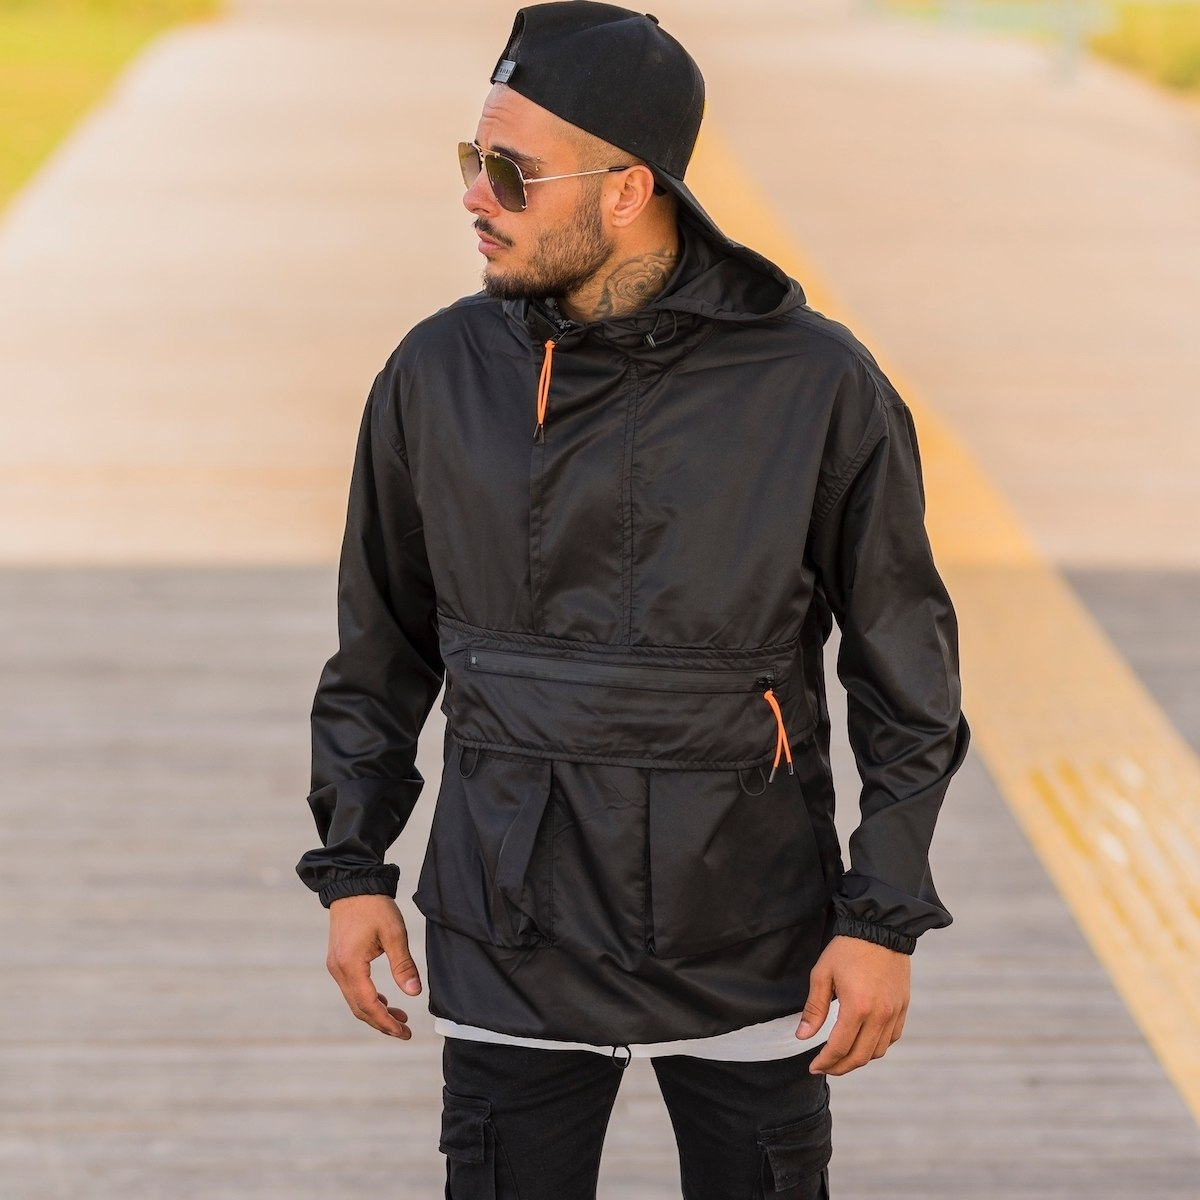 Men's Rainproof Tactical Hoodie